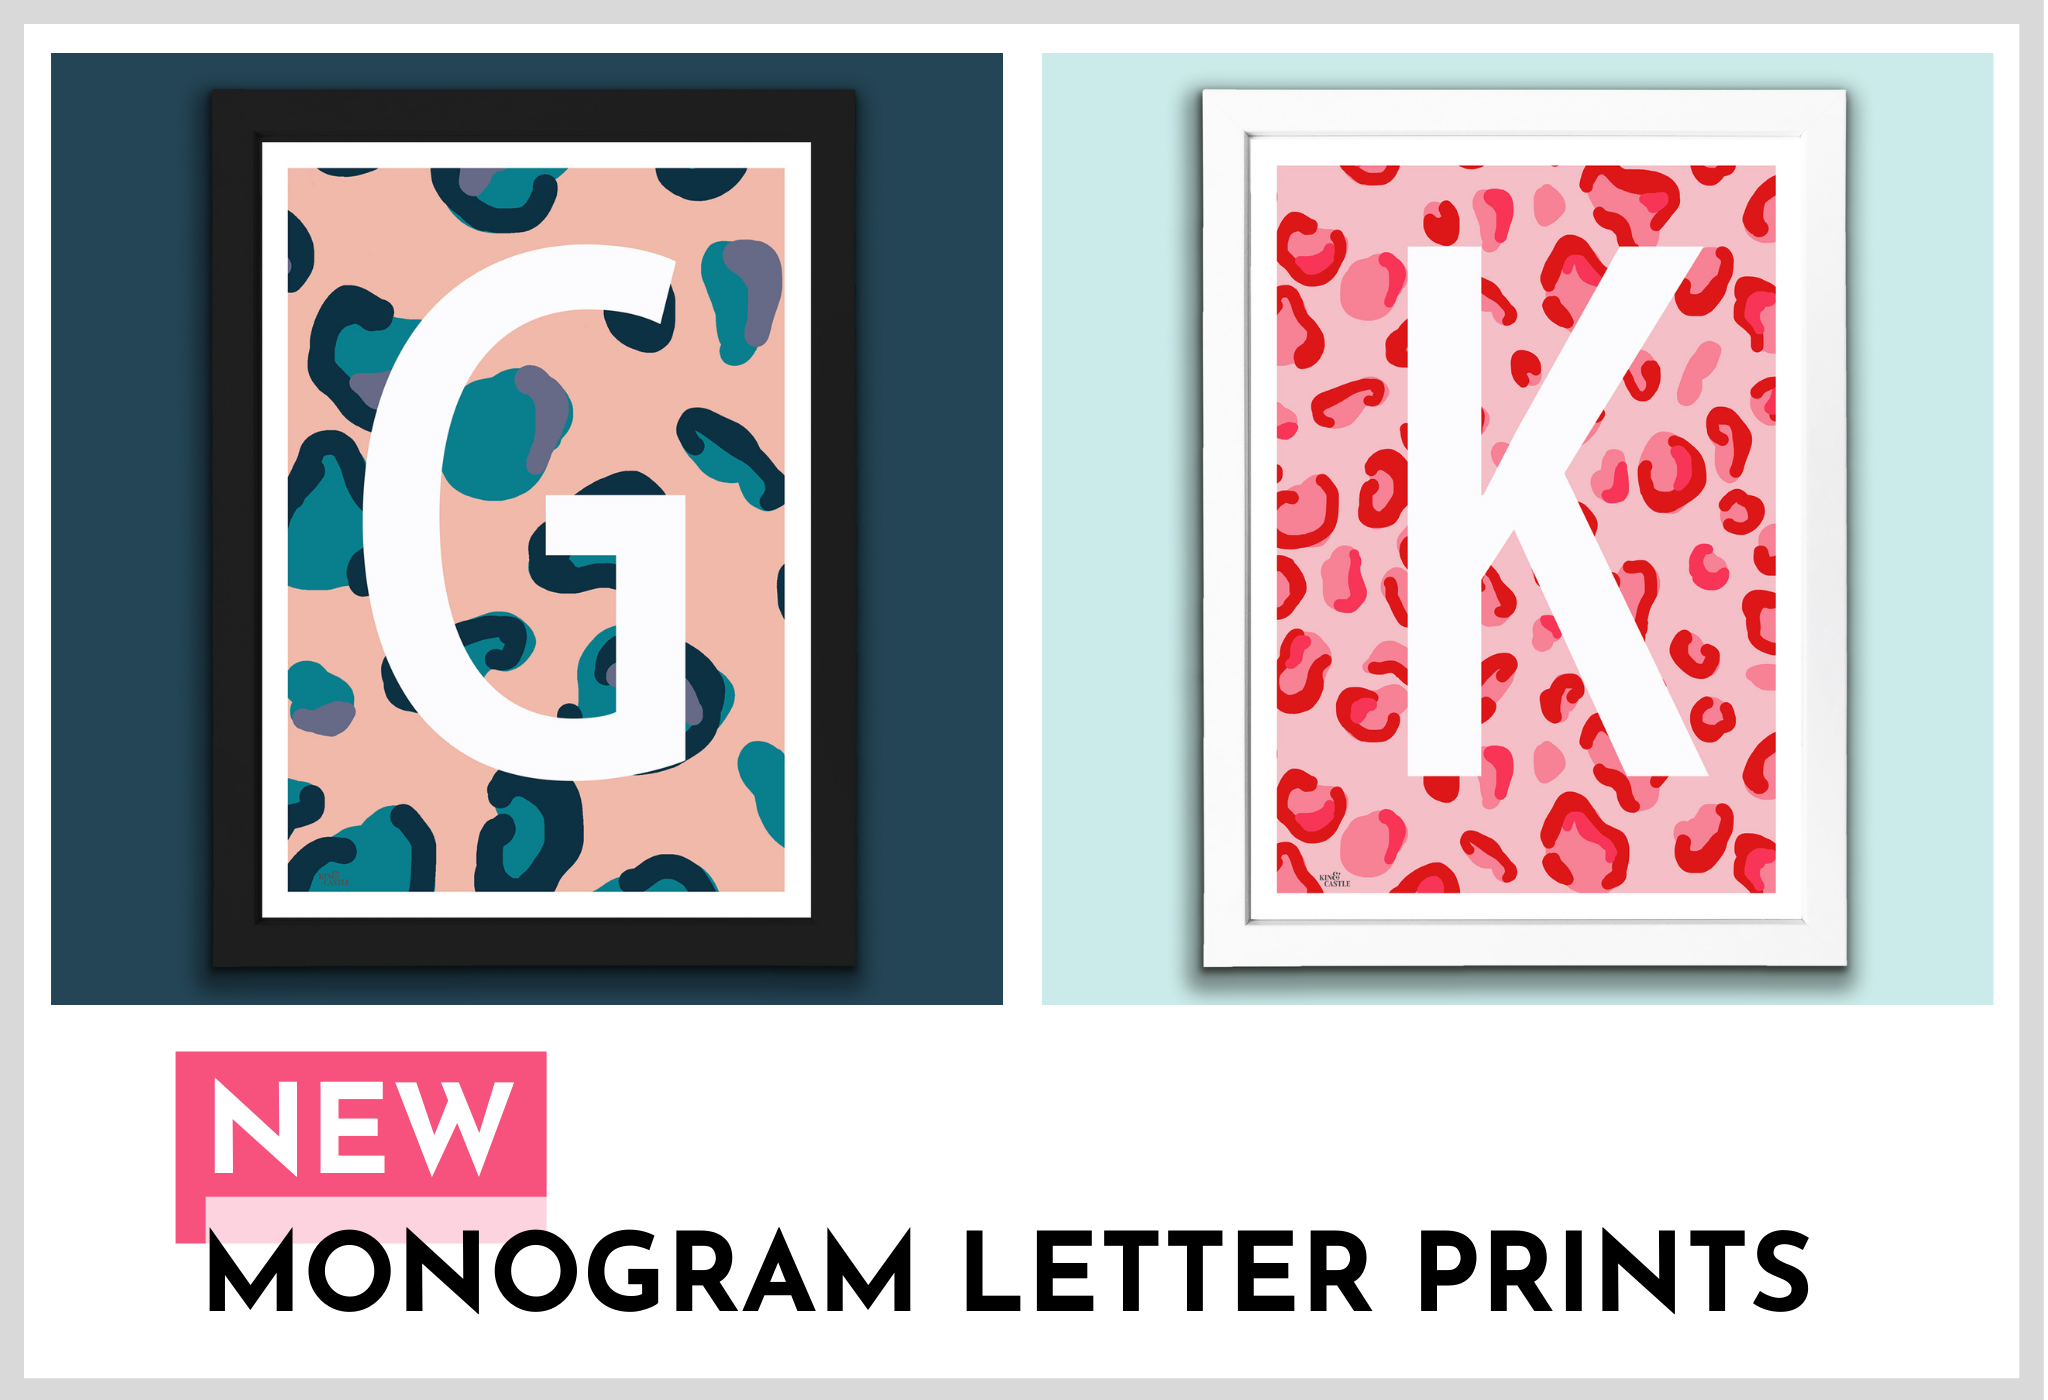 Kin and Castle Monogram Letter Prints - image show two leopard print art prints in different colours and the initials G and K on them. The prints are on the wall in frames.